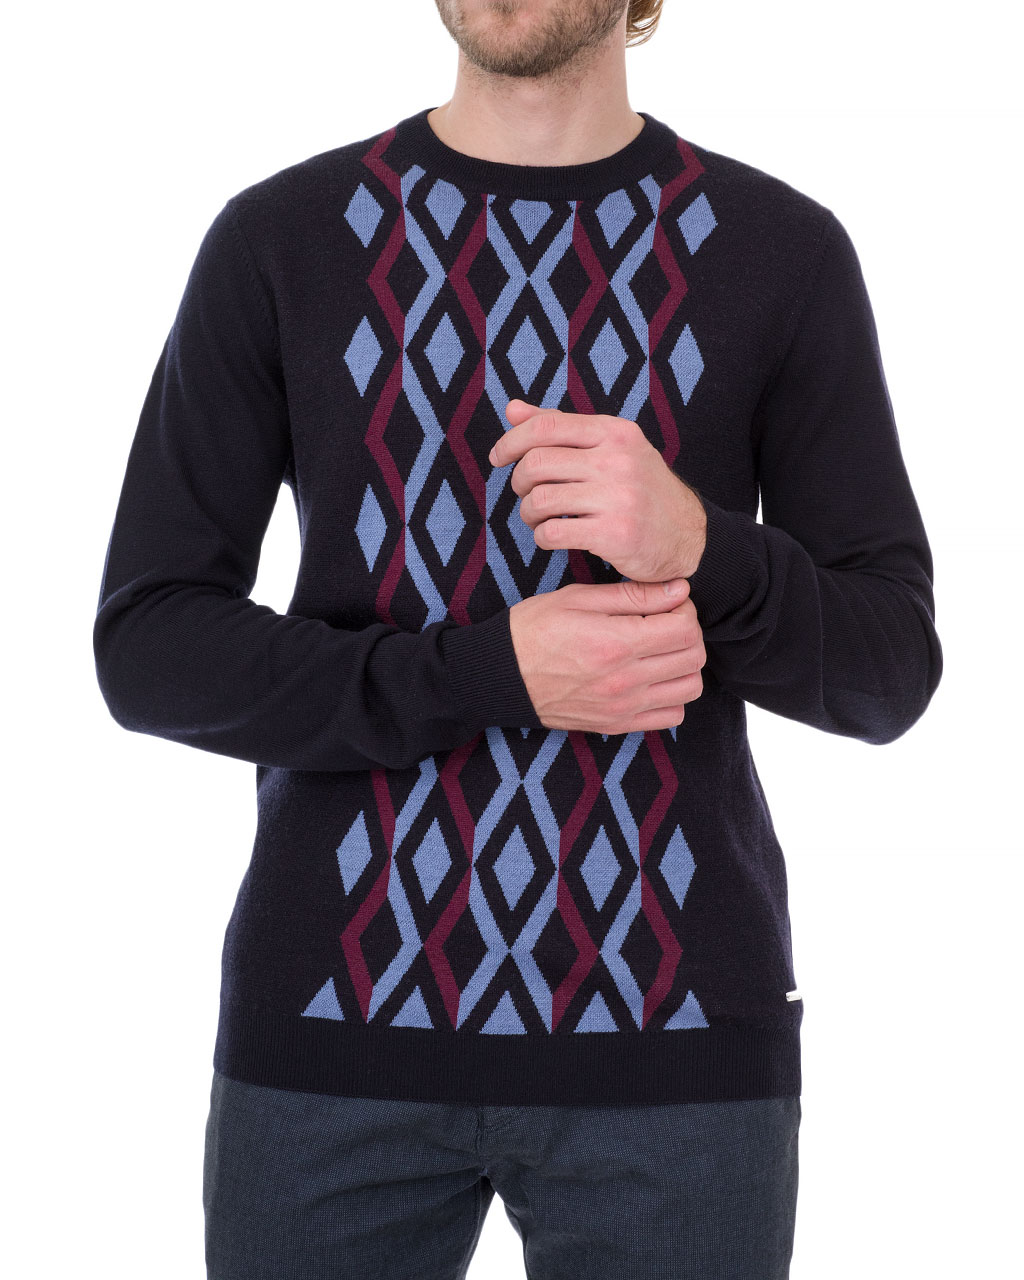 Men's jumper 1855-319/19-20 (5)